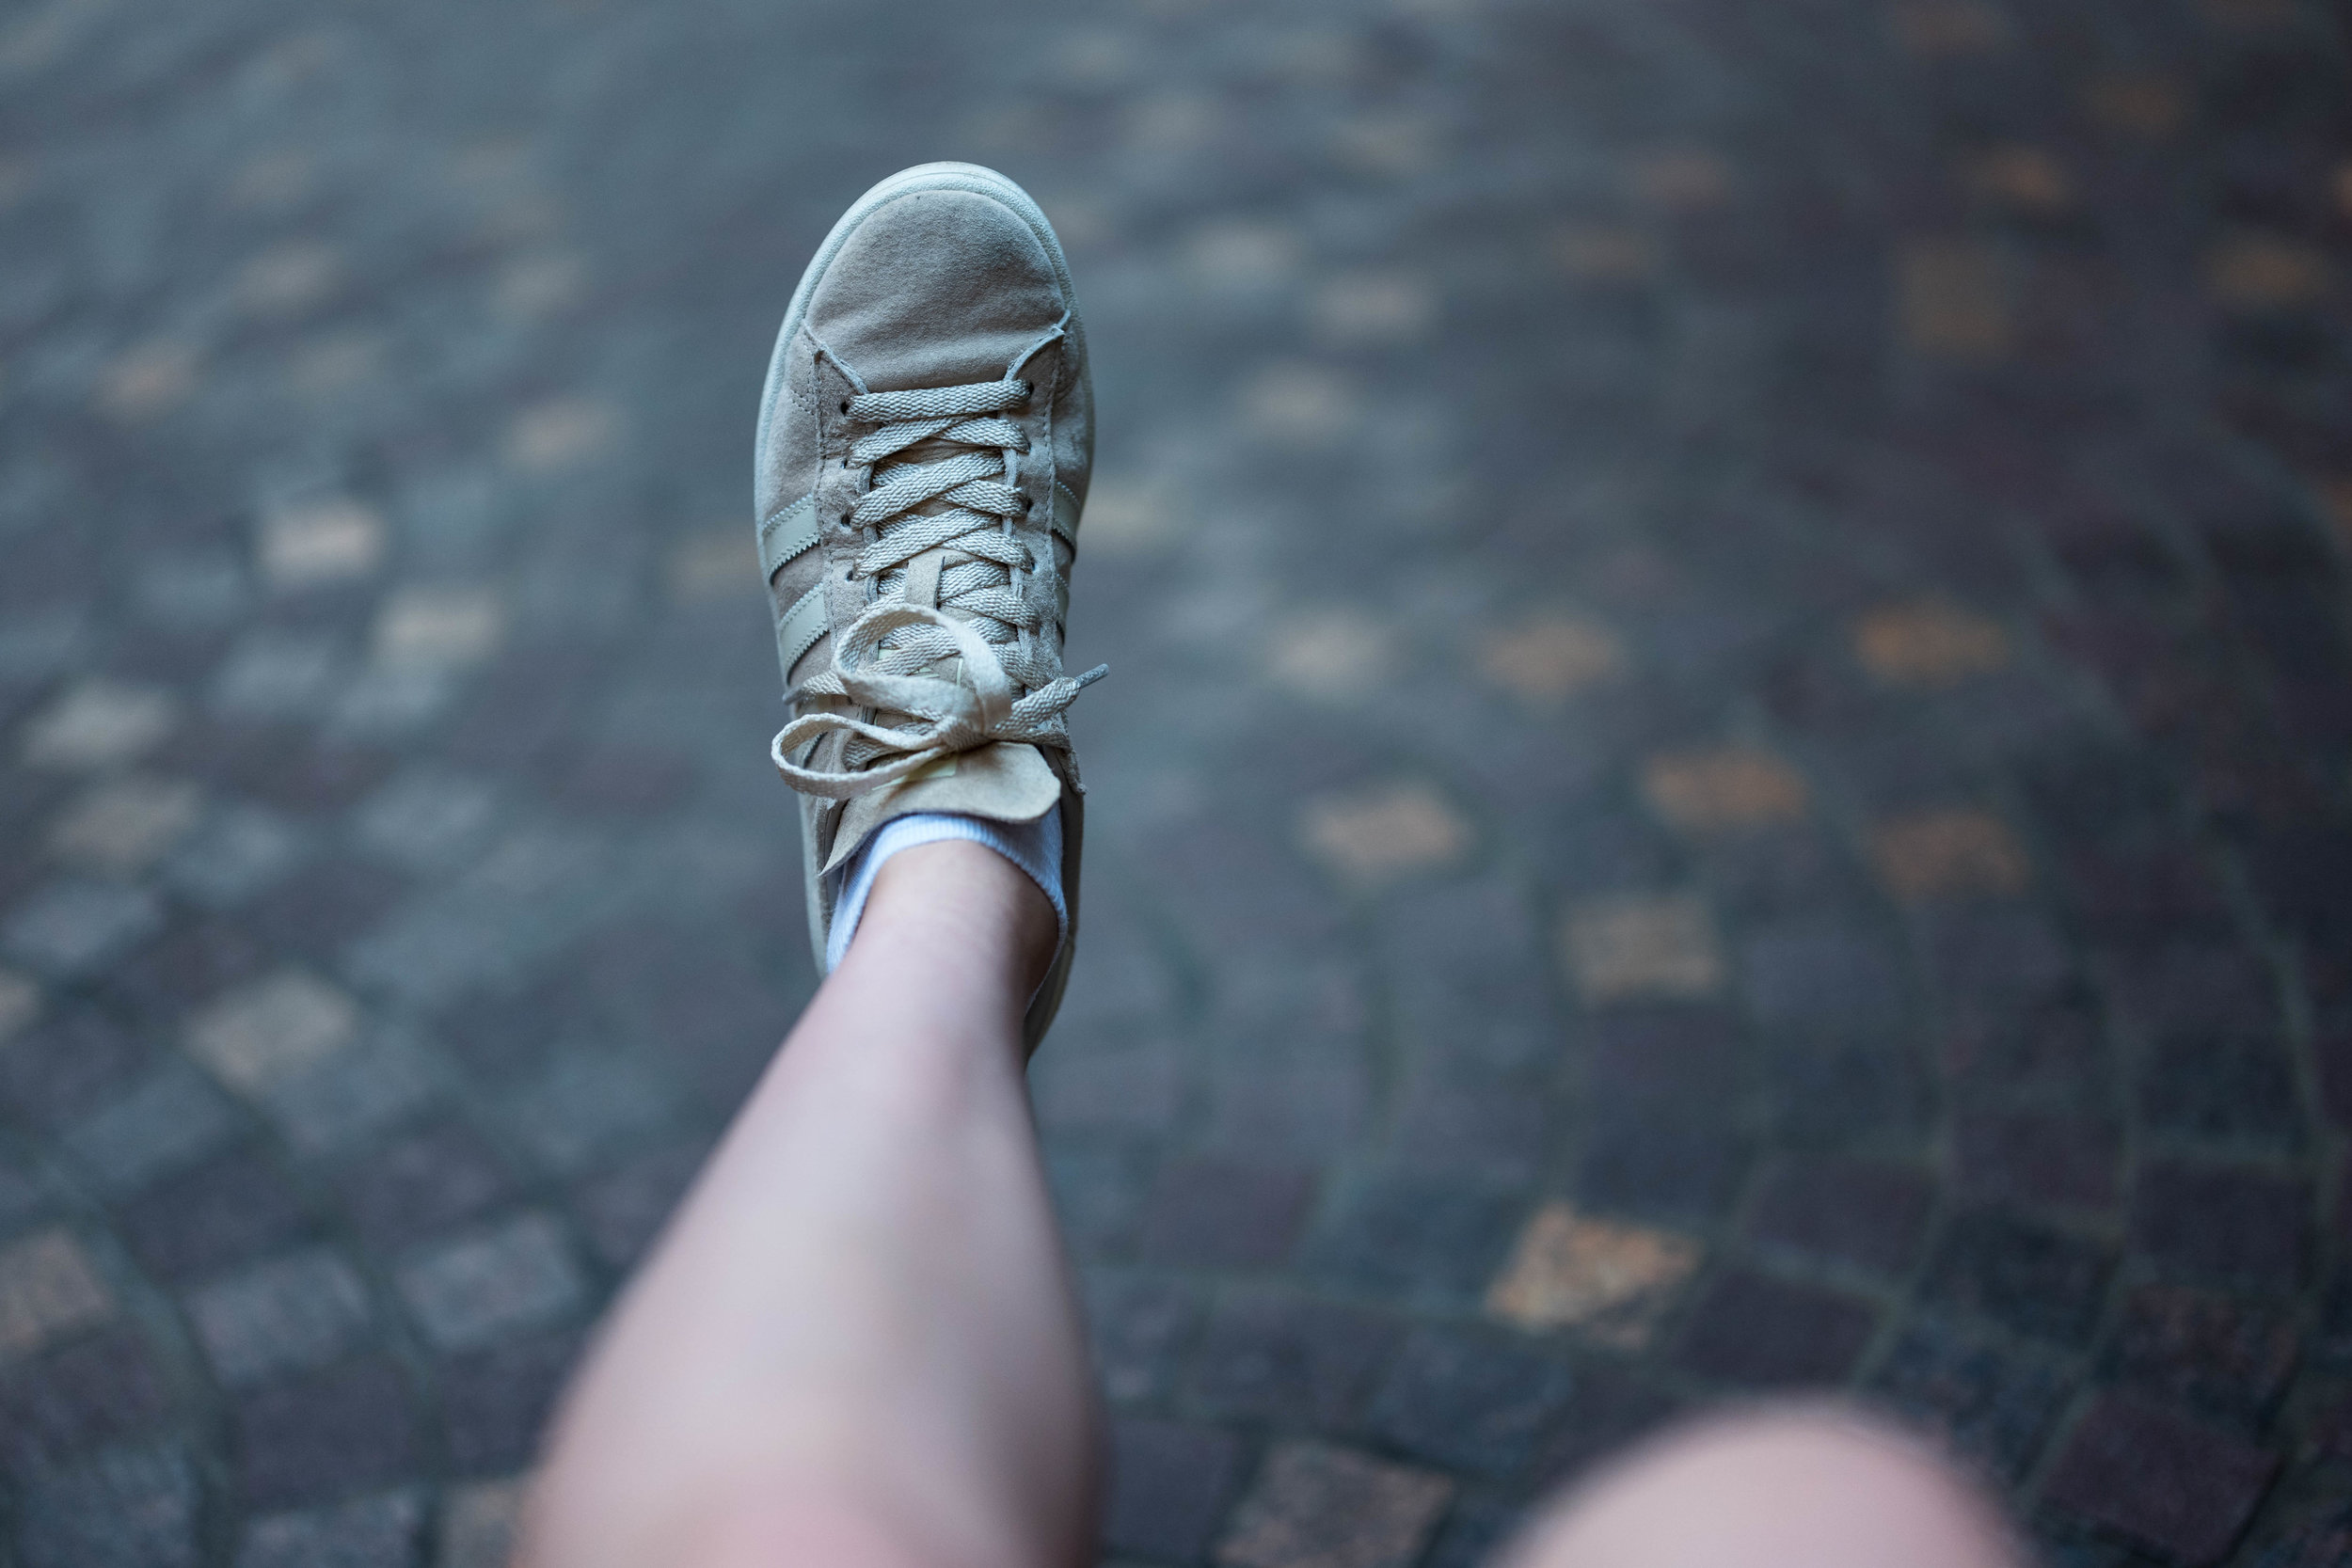 Leica 50mm f/1.4 Summilux-SL ASPH - Parting shots from Anna. This one she took of her shoe.